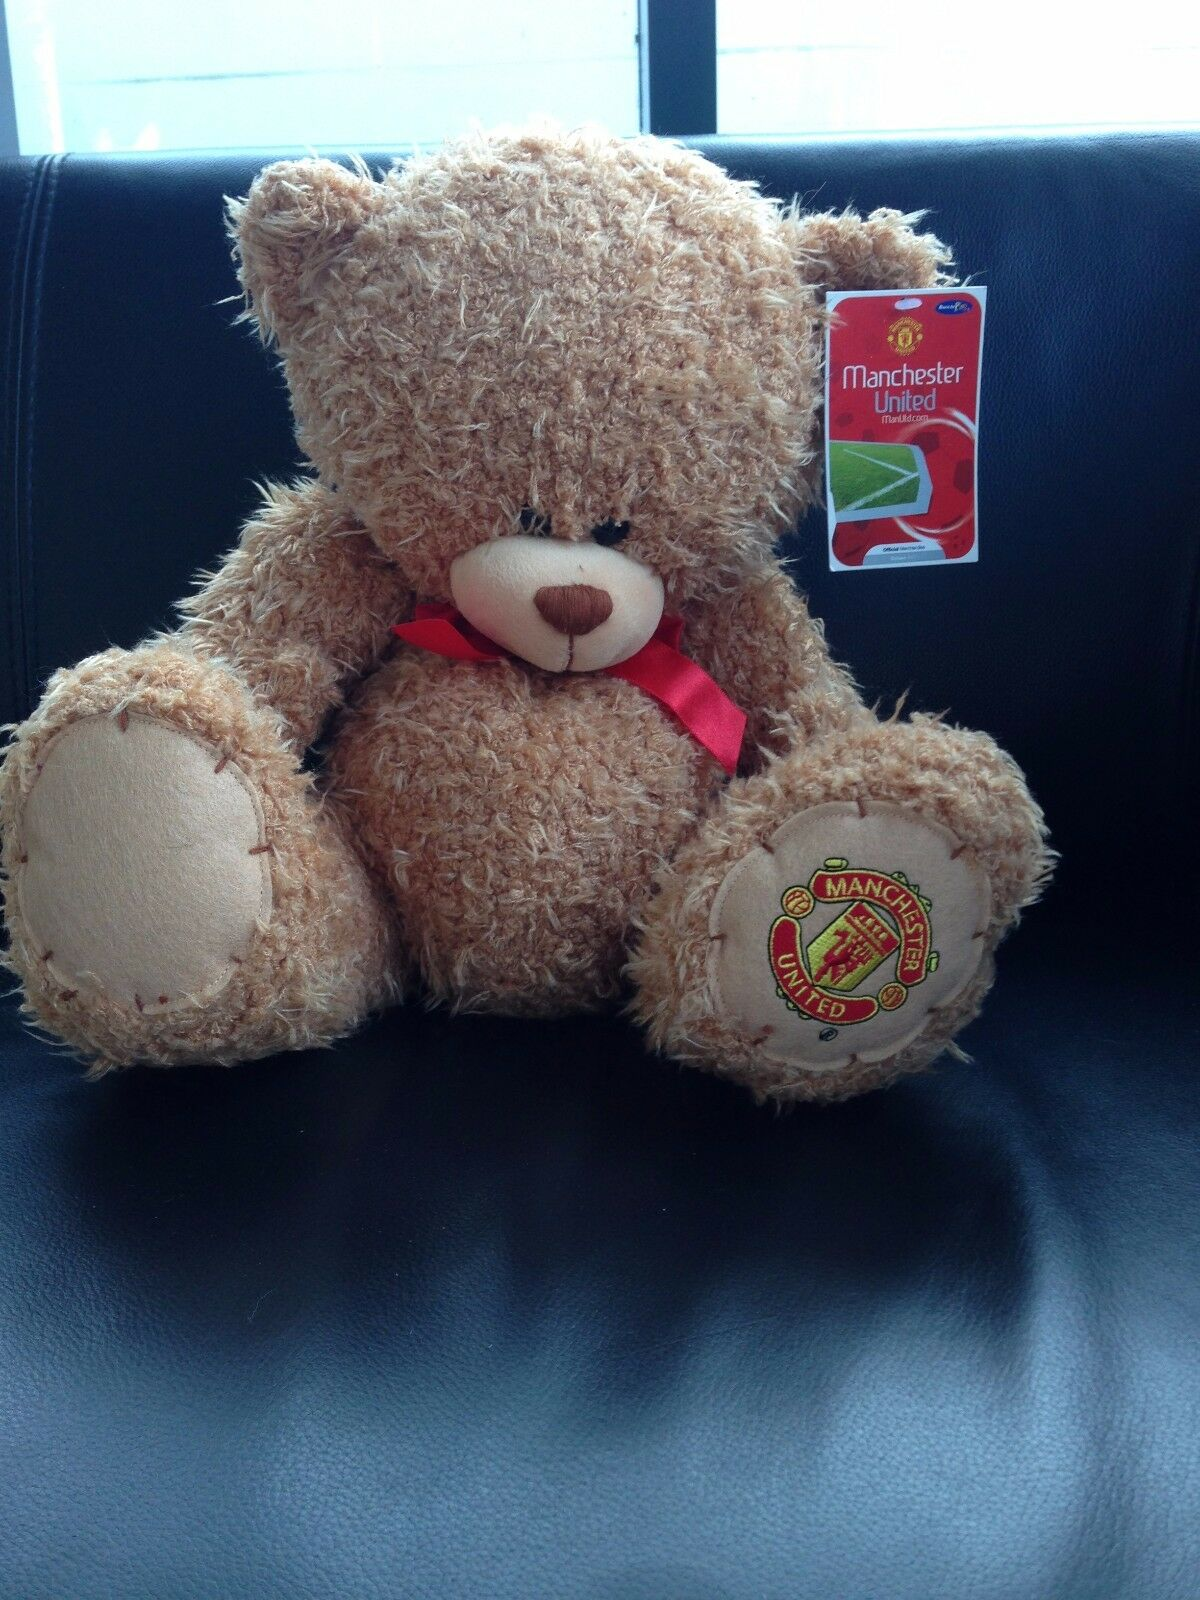 Man Utd 12'' Deluxe Bear, 20 pcs Manchester united Teddy bears